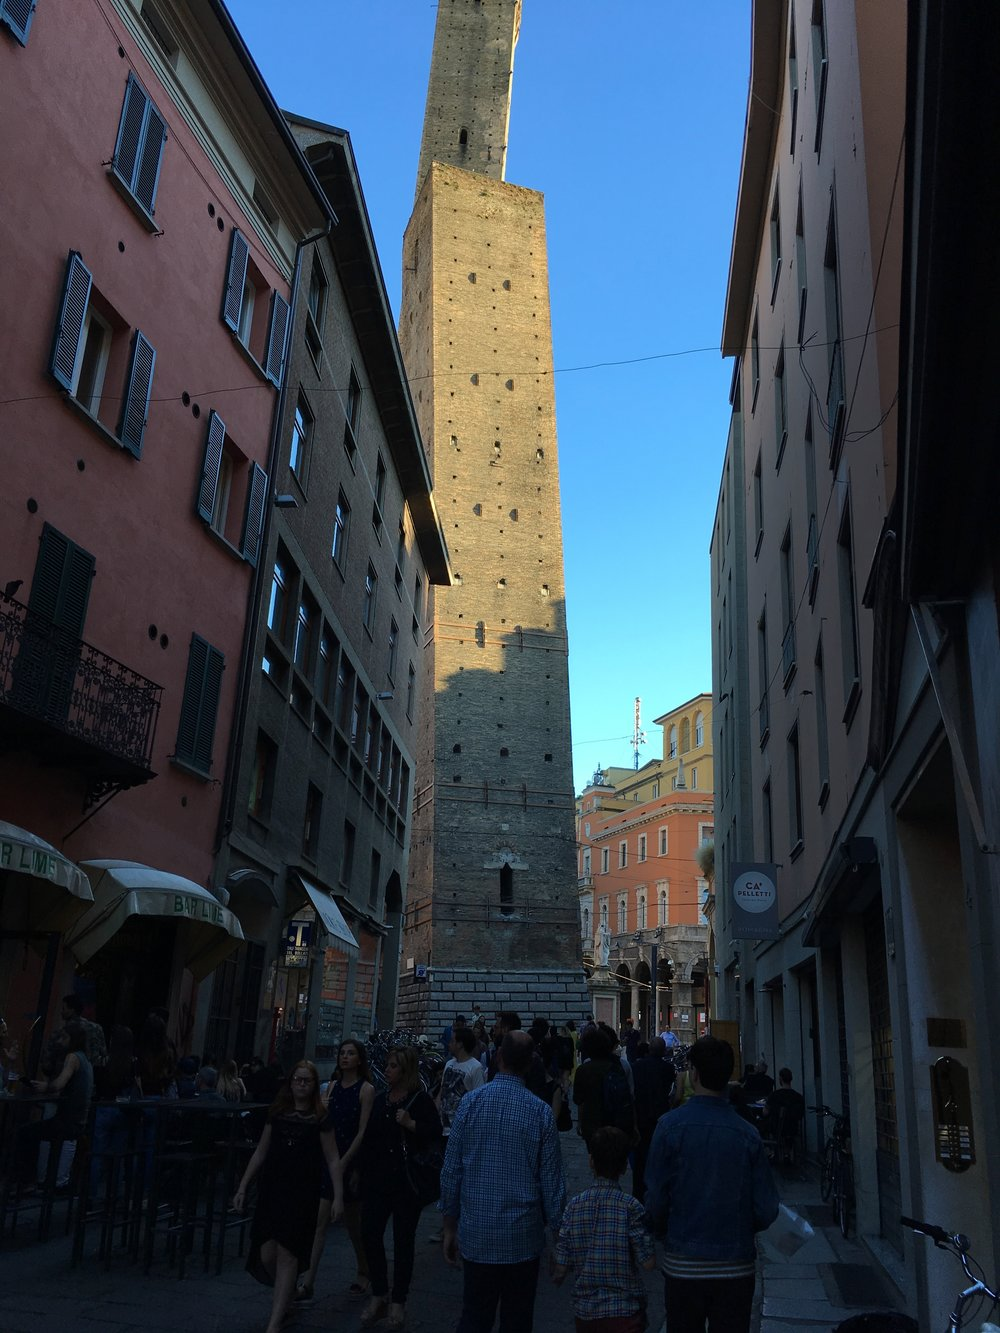 Leaning tower, due torri, Bologna, Italy